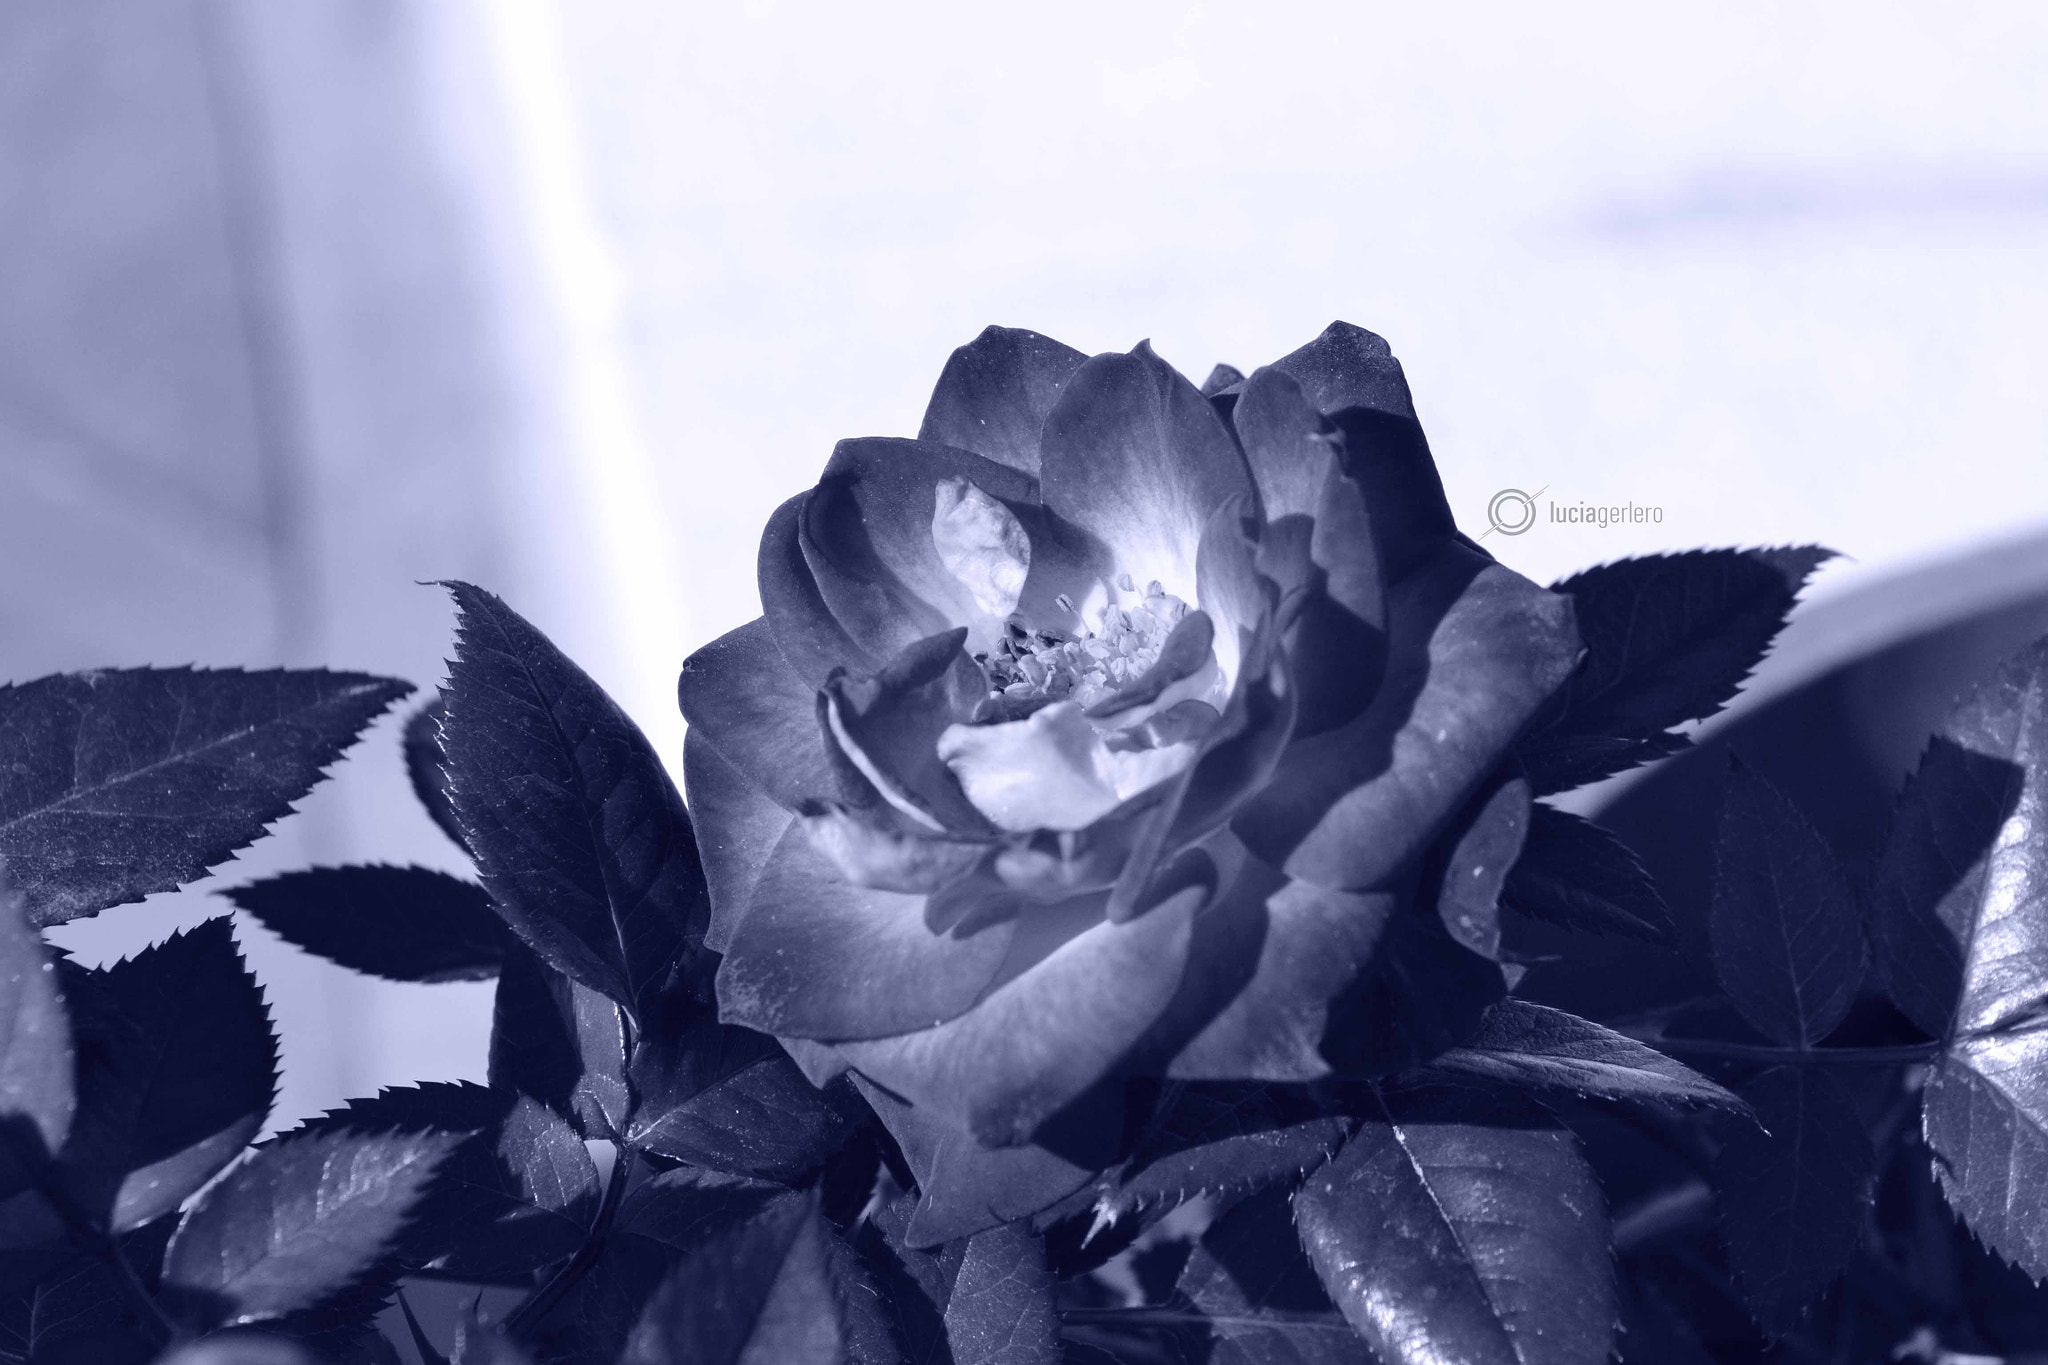 Photograph Rosa en blanco y negro by Lucia Gerlero on 500px